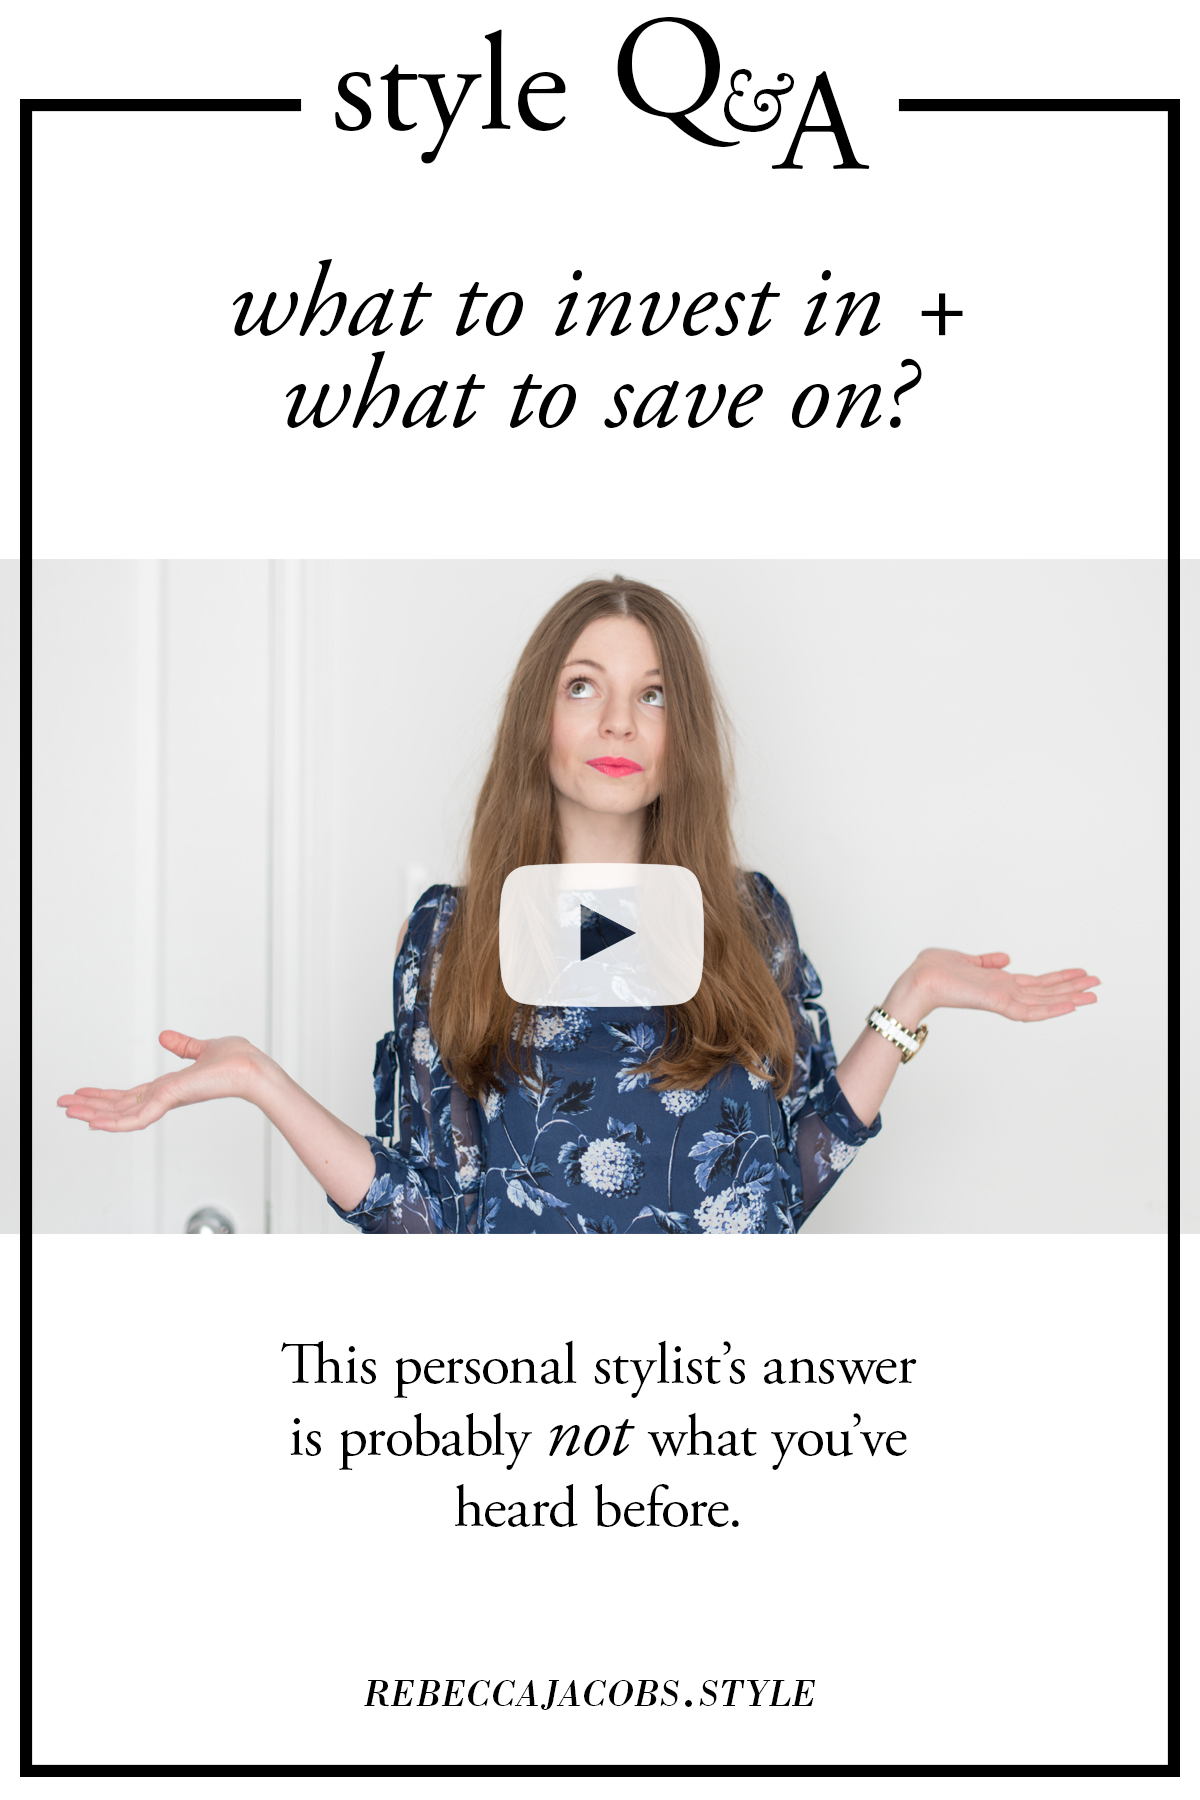 stylWhat-clothes-to-invest-in-and-what-to-save-on-masthead.jpg